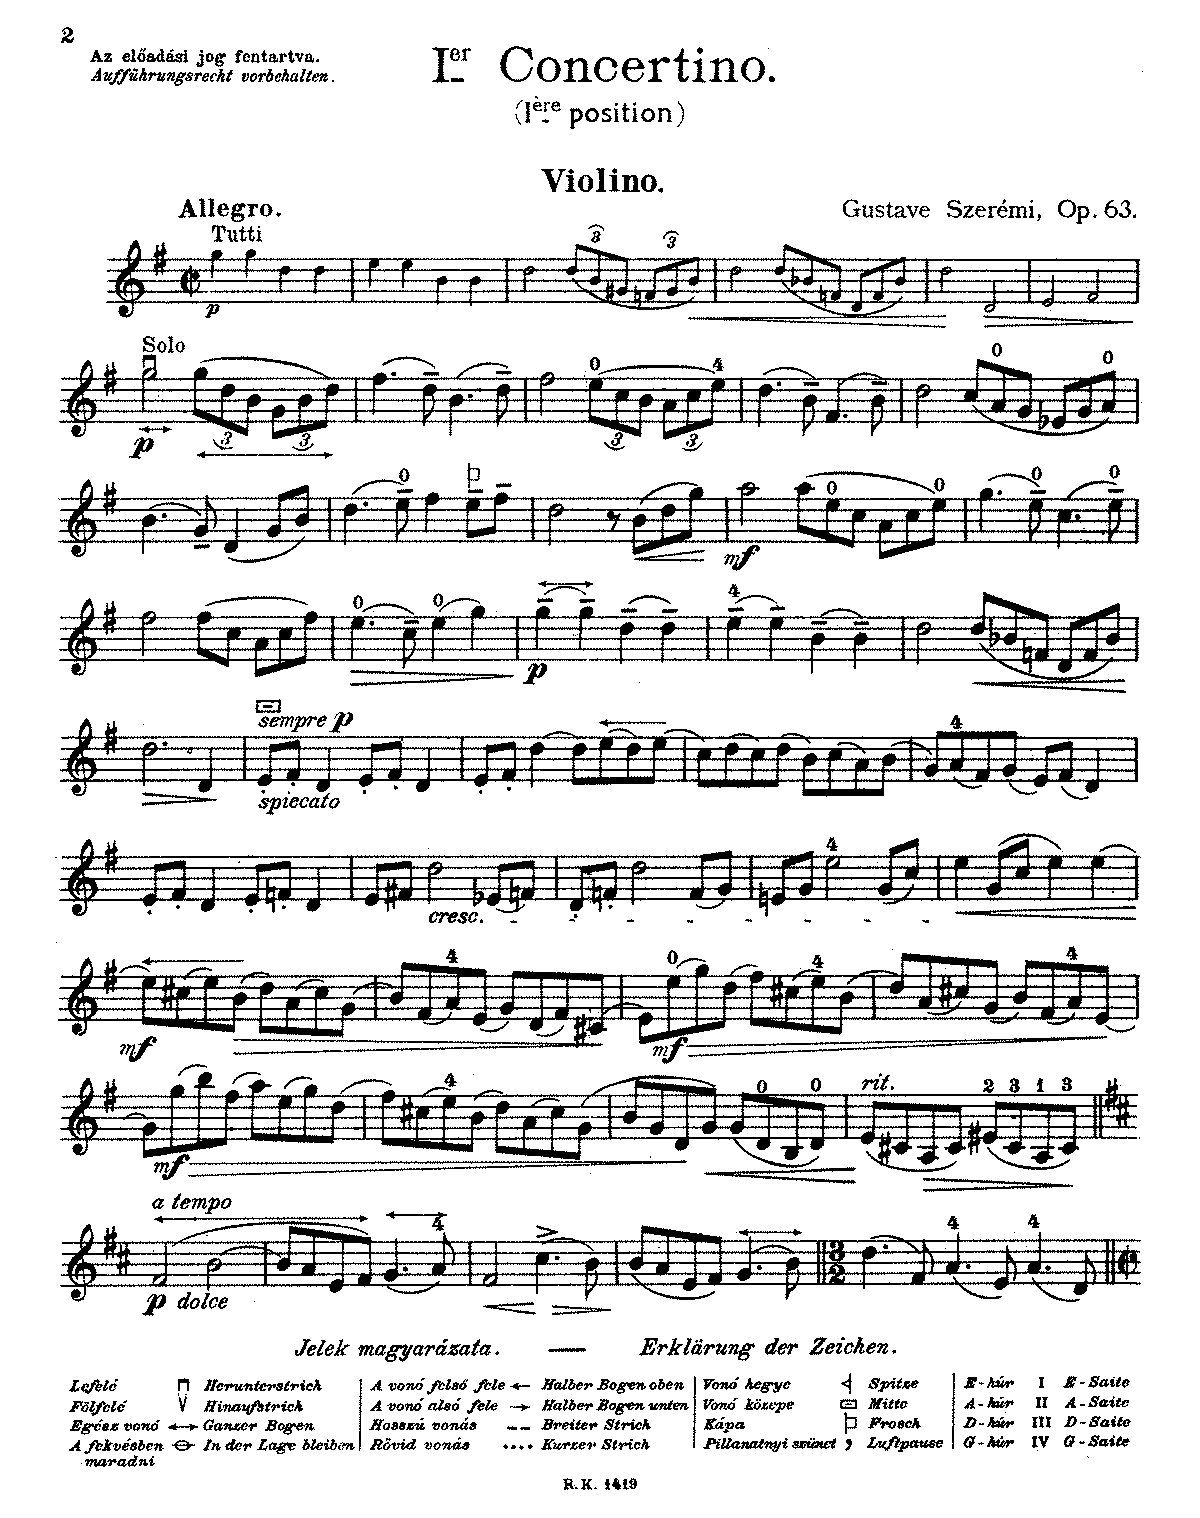 PMLP304006-GSzerémi Concertino No.1, Op.63 violin part.pdf